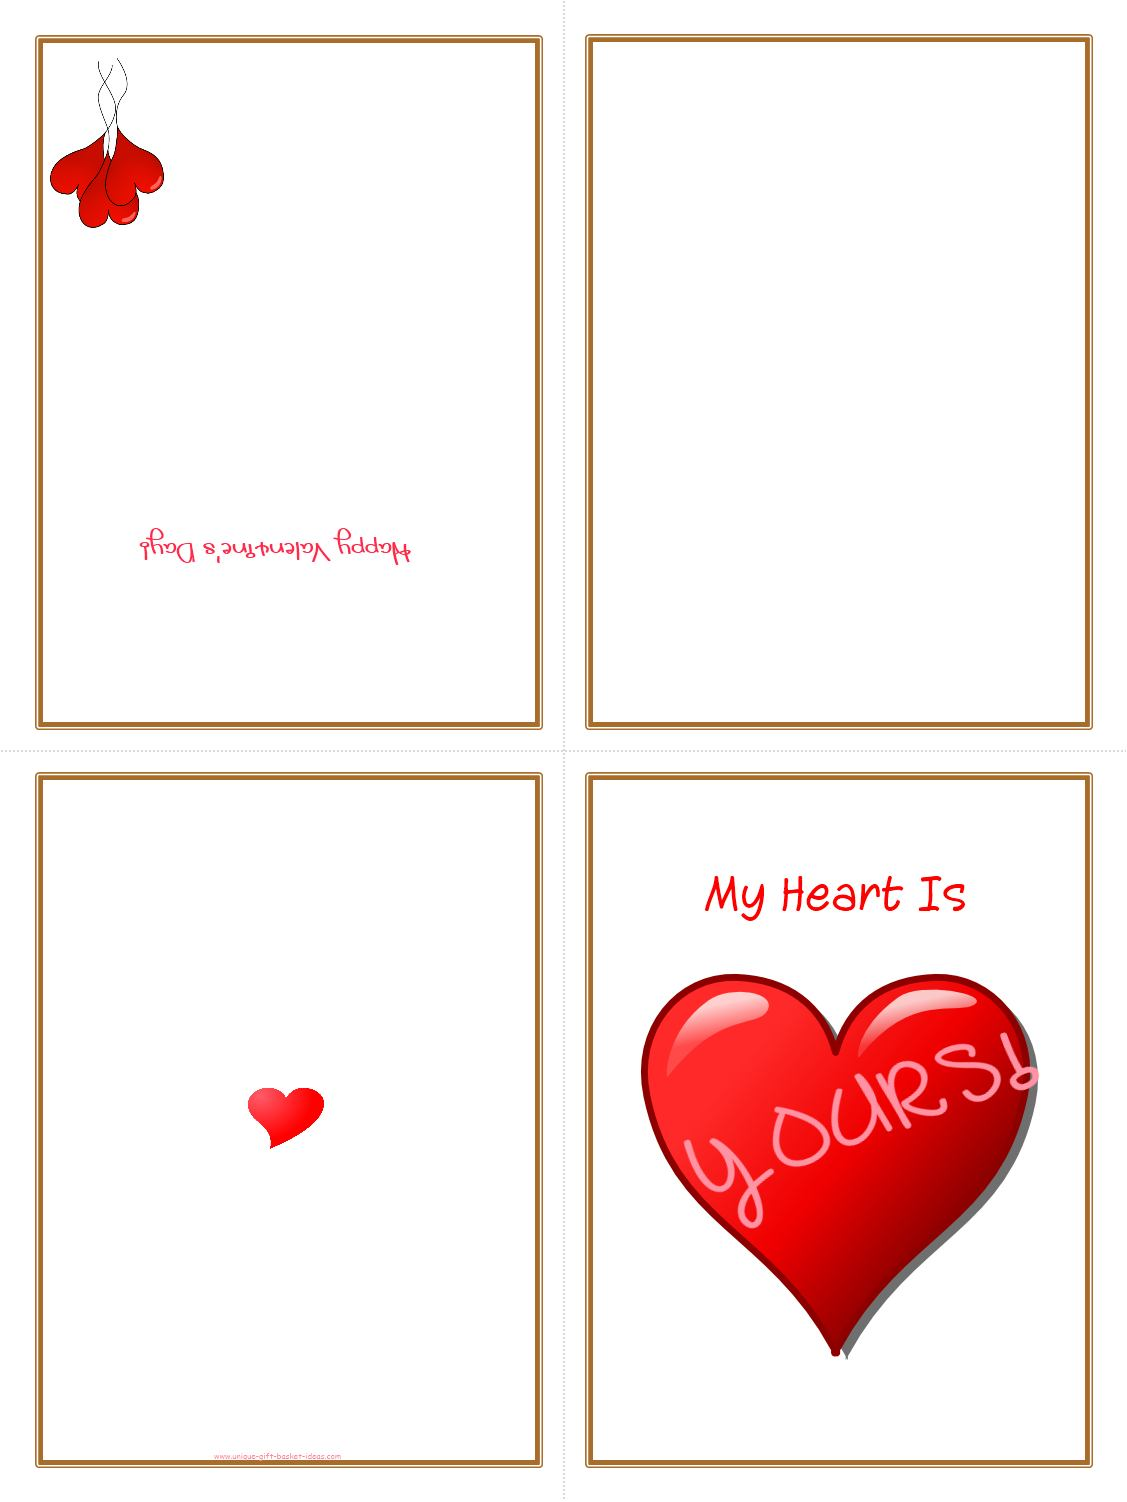 7 Best Images of Easy Free Printable Greeting Cards ...